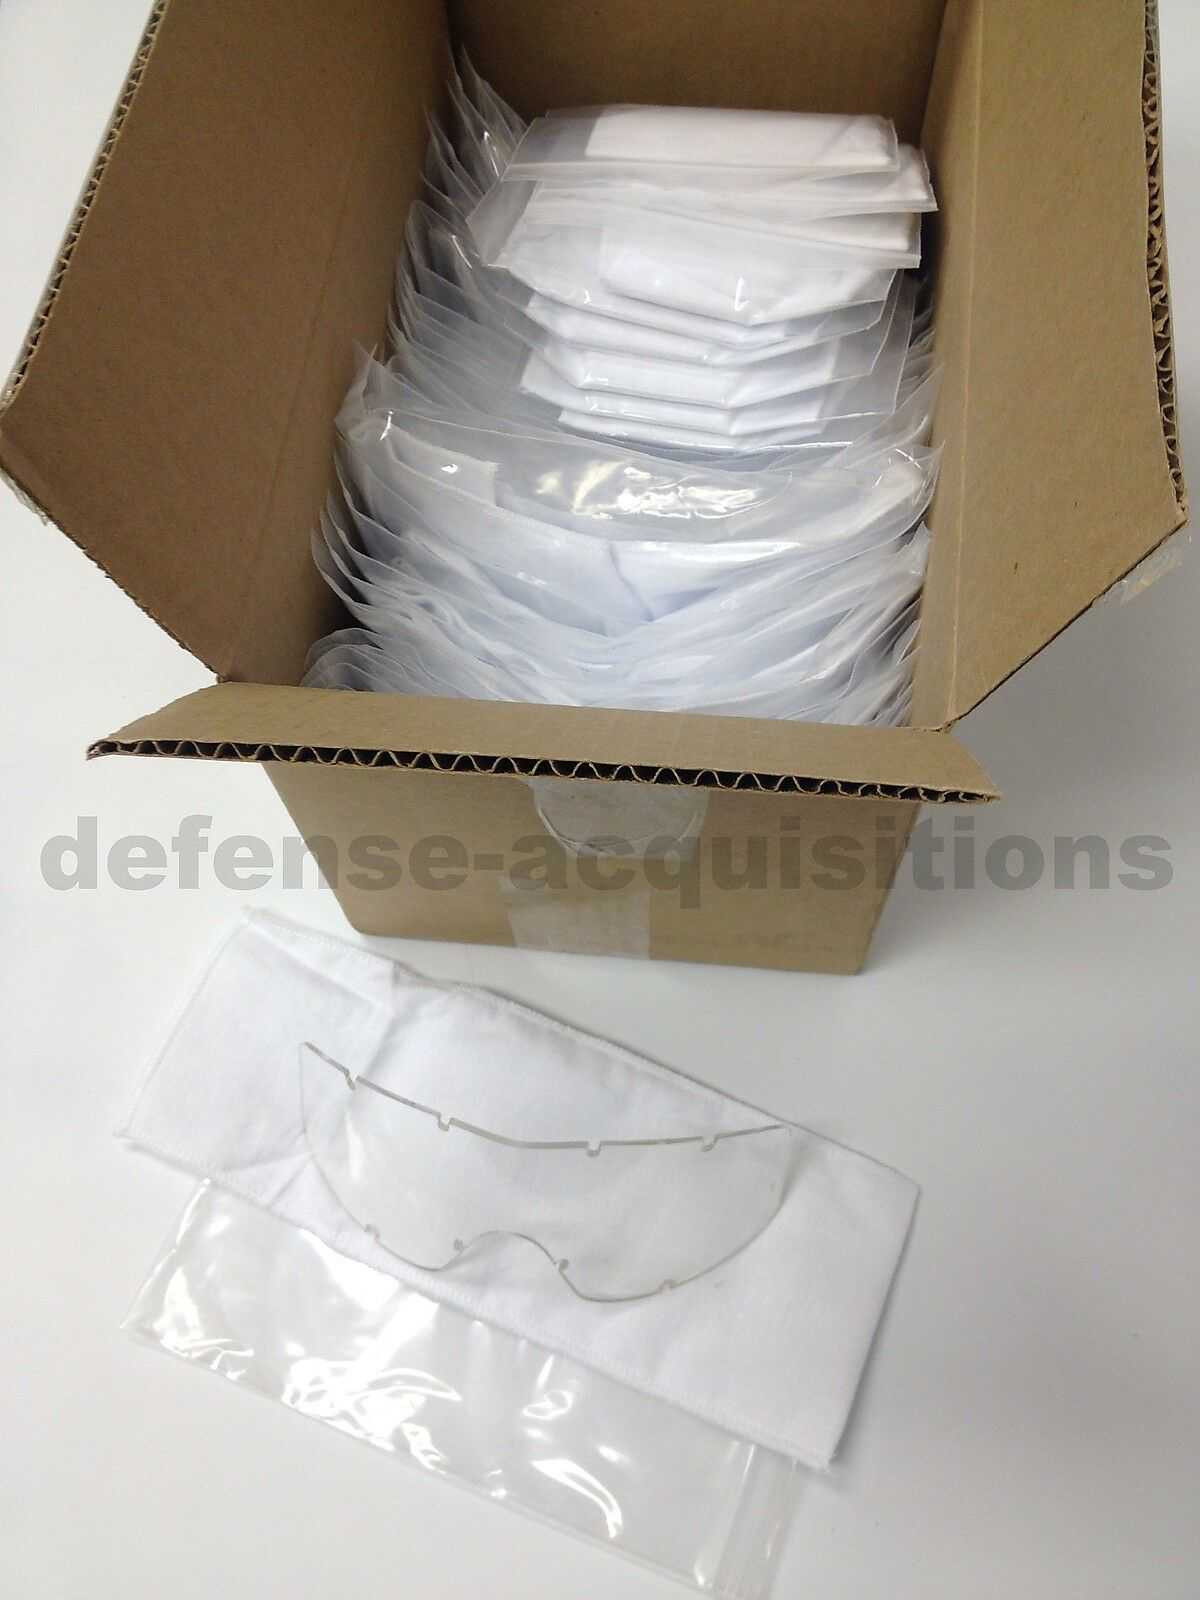 Case of 50 New ESS Profile NVG Goggle, TurboFan, FirePro Clear Replacement Lens